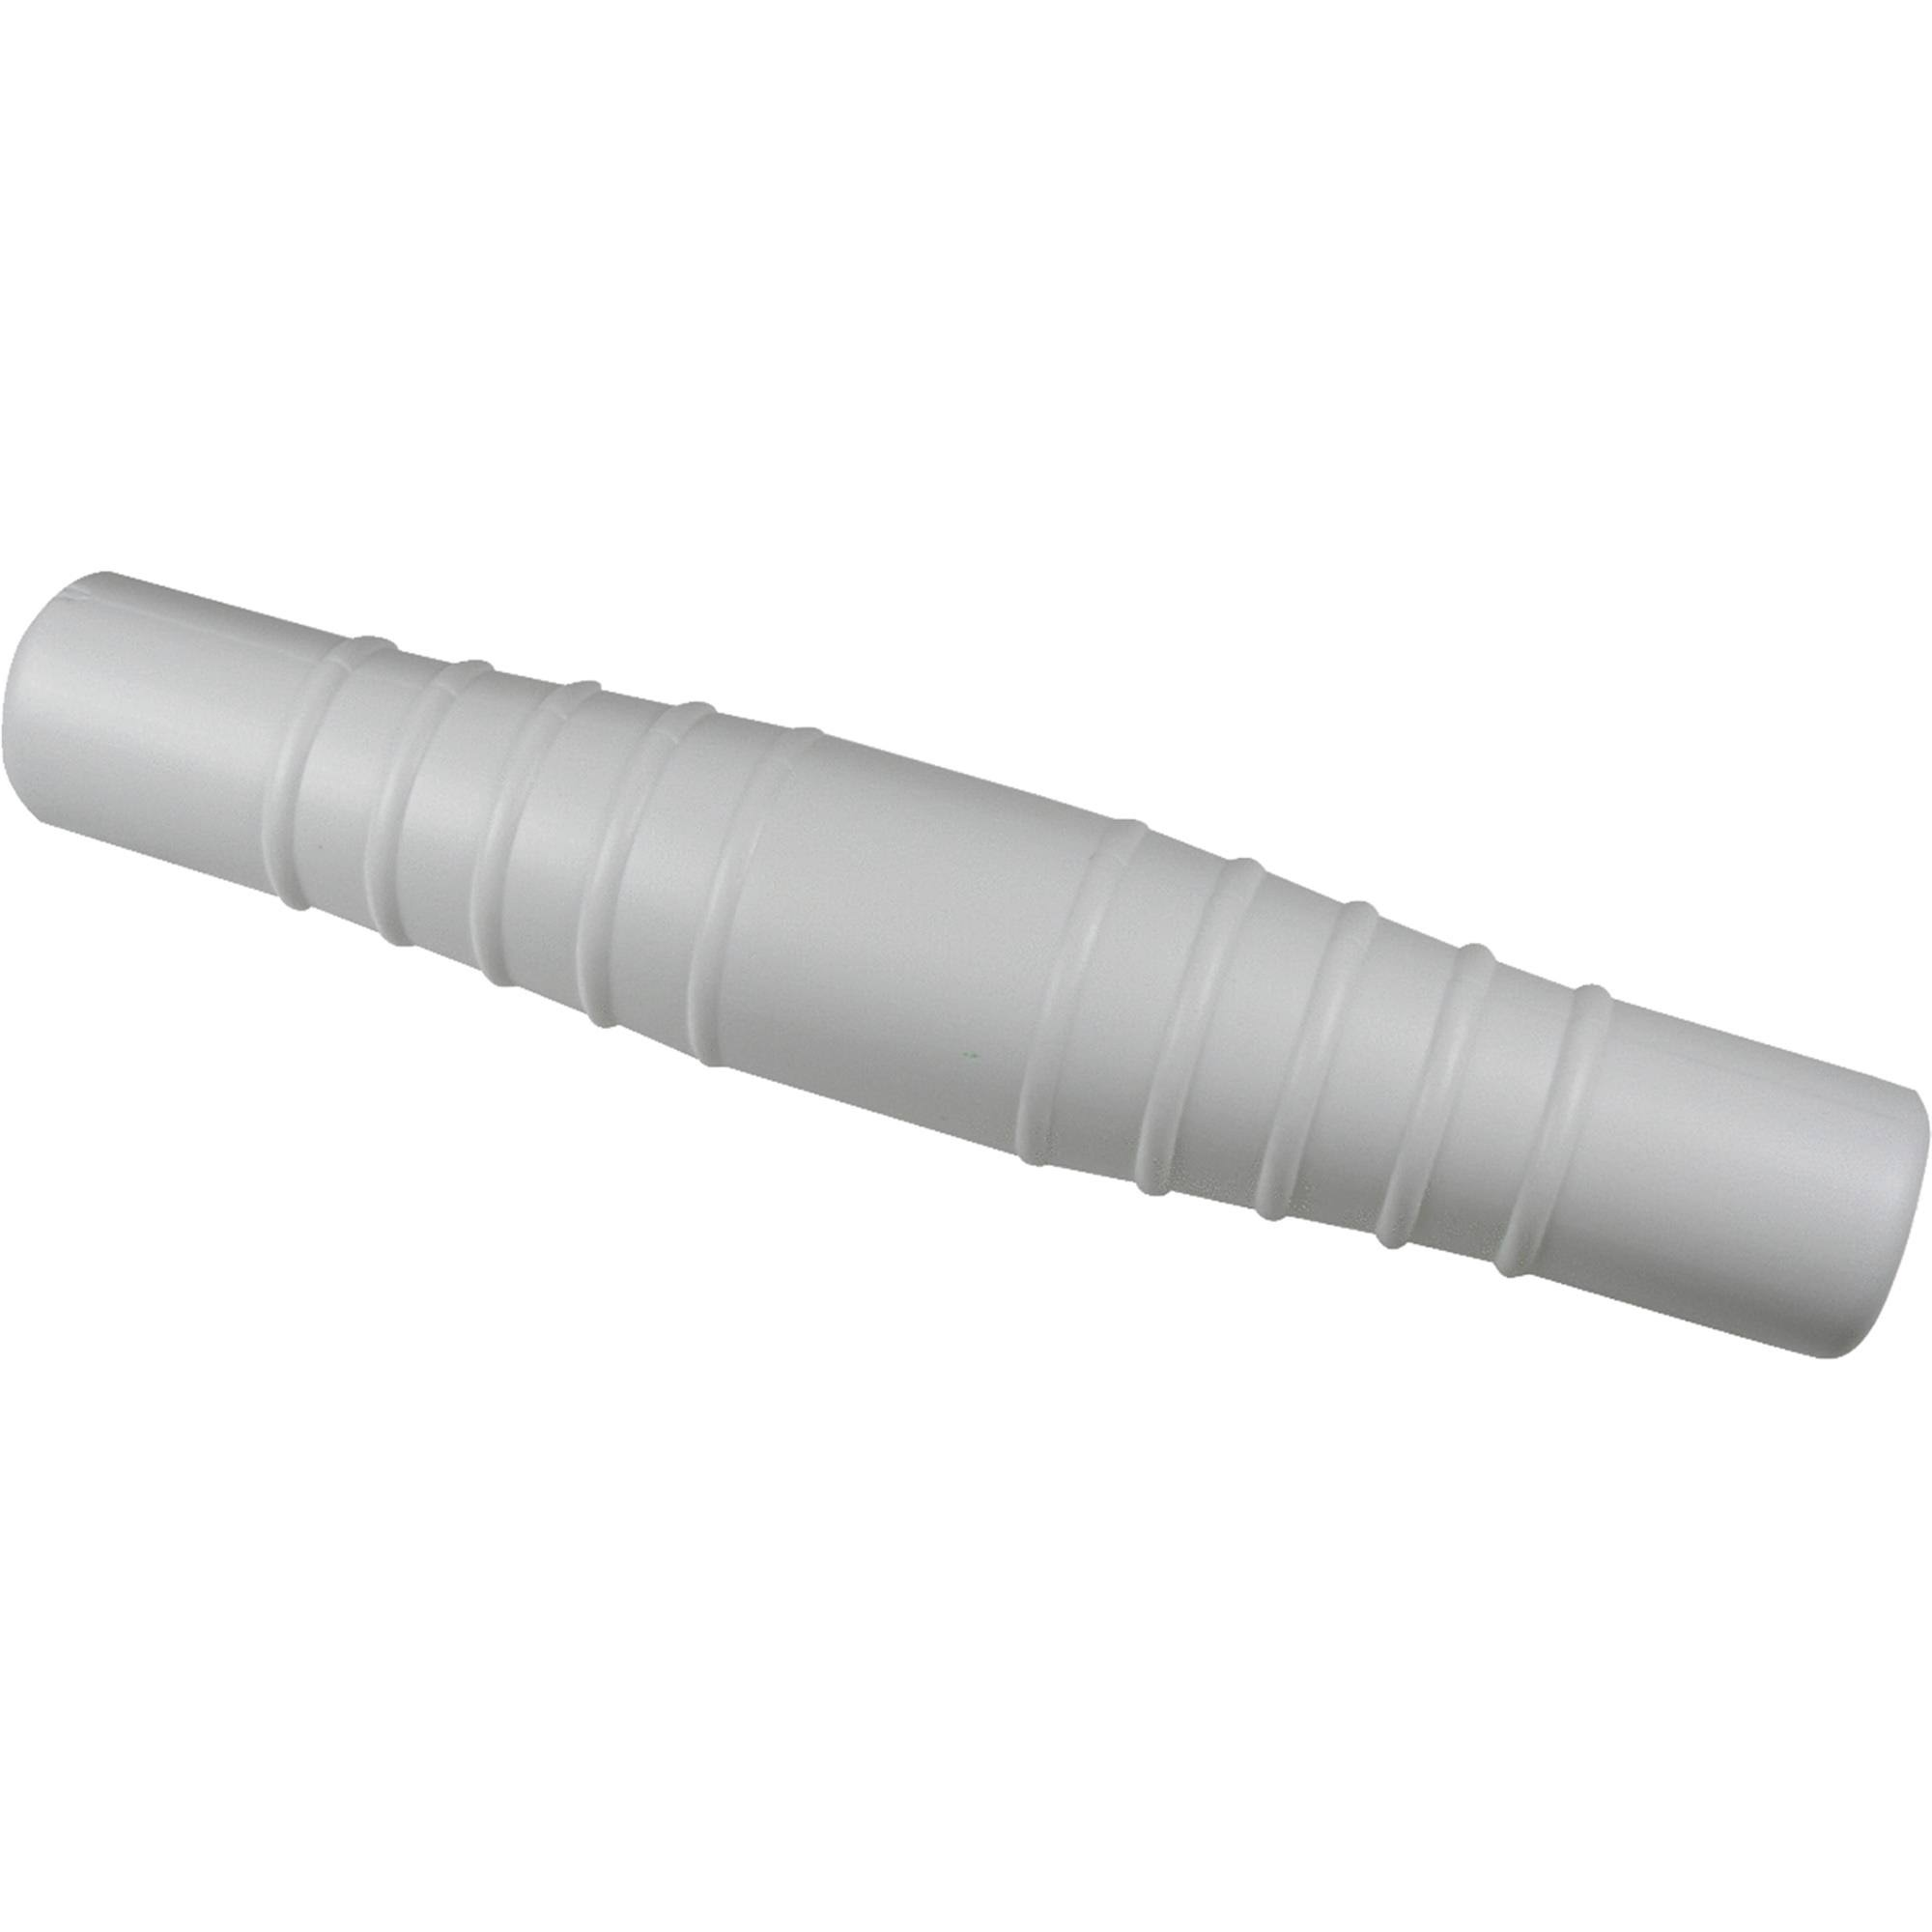 Jed Pool Tools 80-220 Hose Connector - 9""